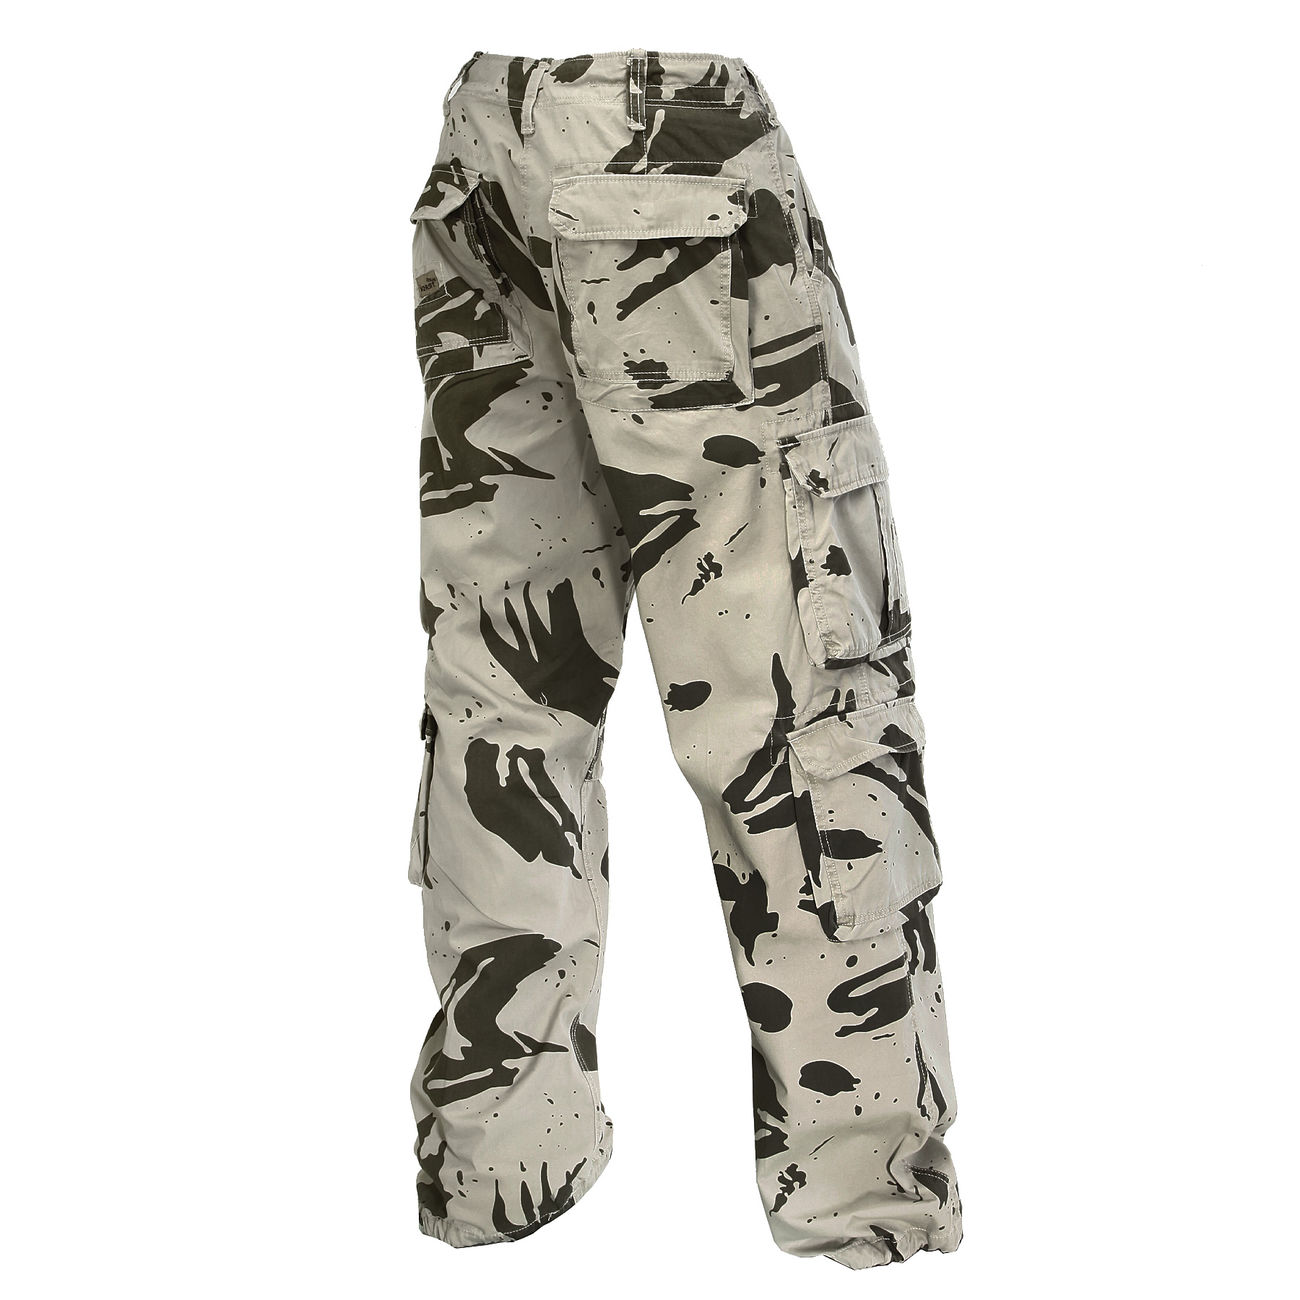 Pure Trash Hose Defense sand camo 2